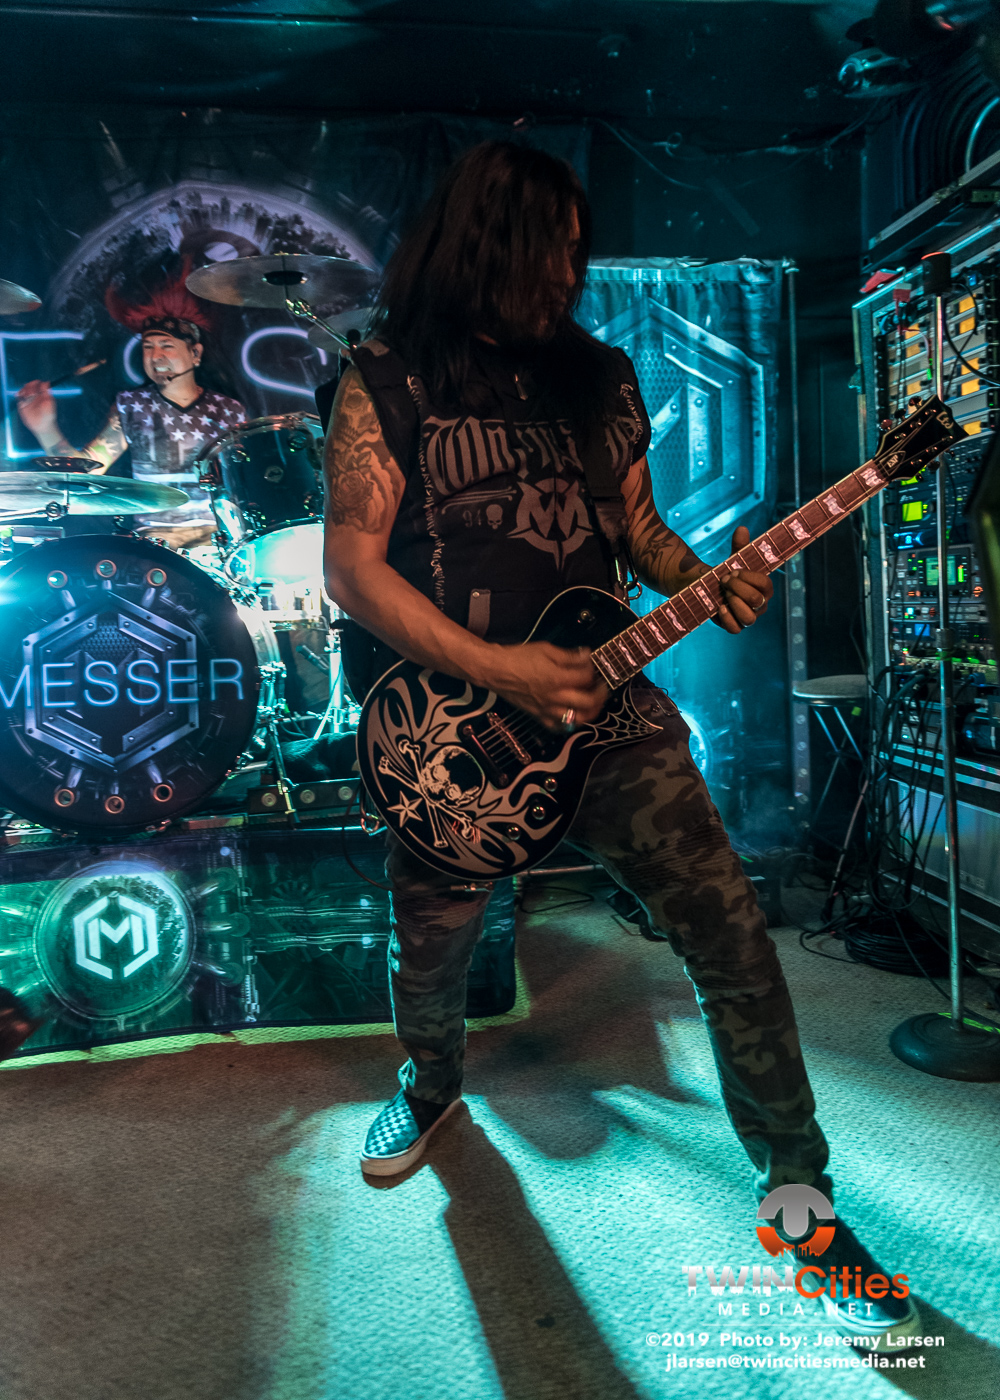 Messer-The-Whats-Up-Lounge-20190428-17